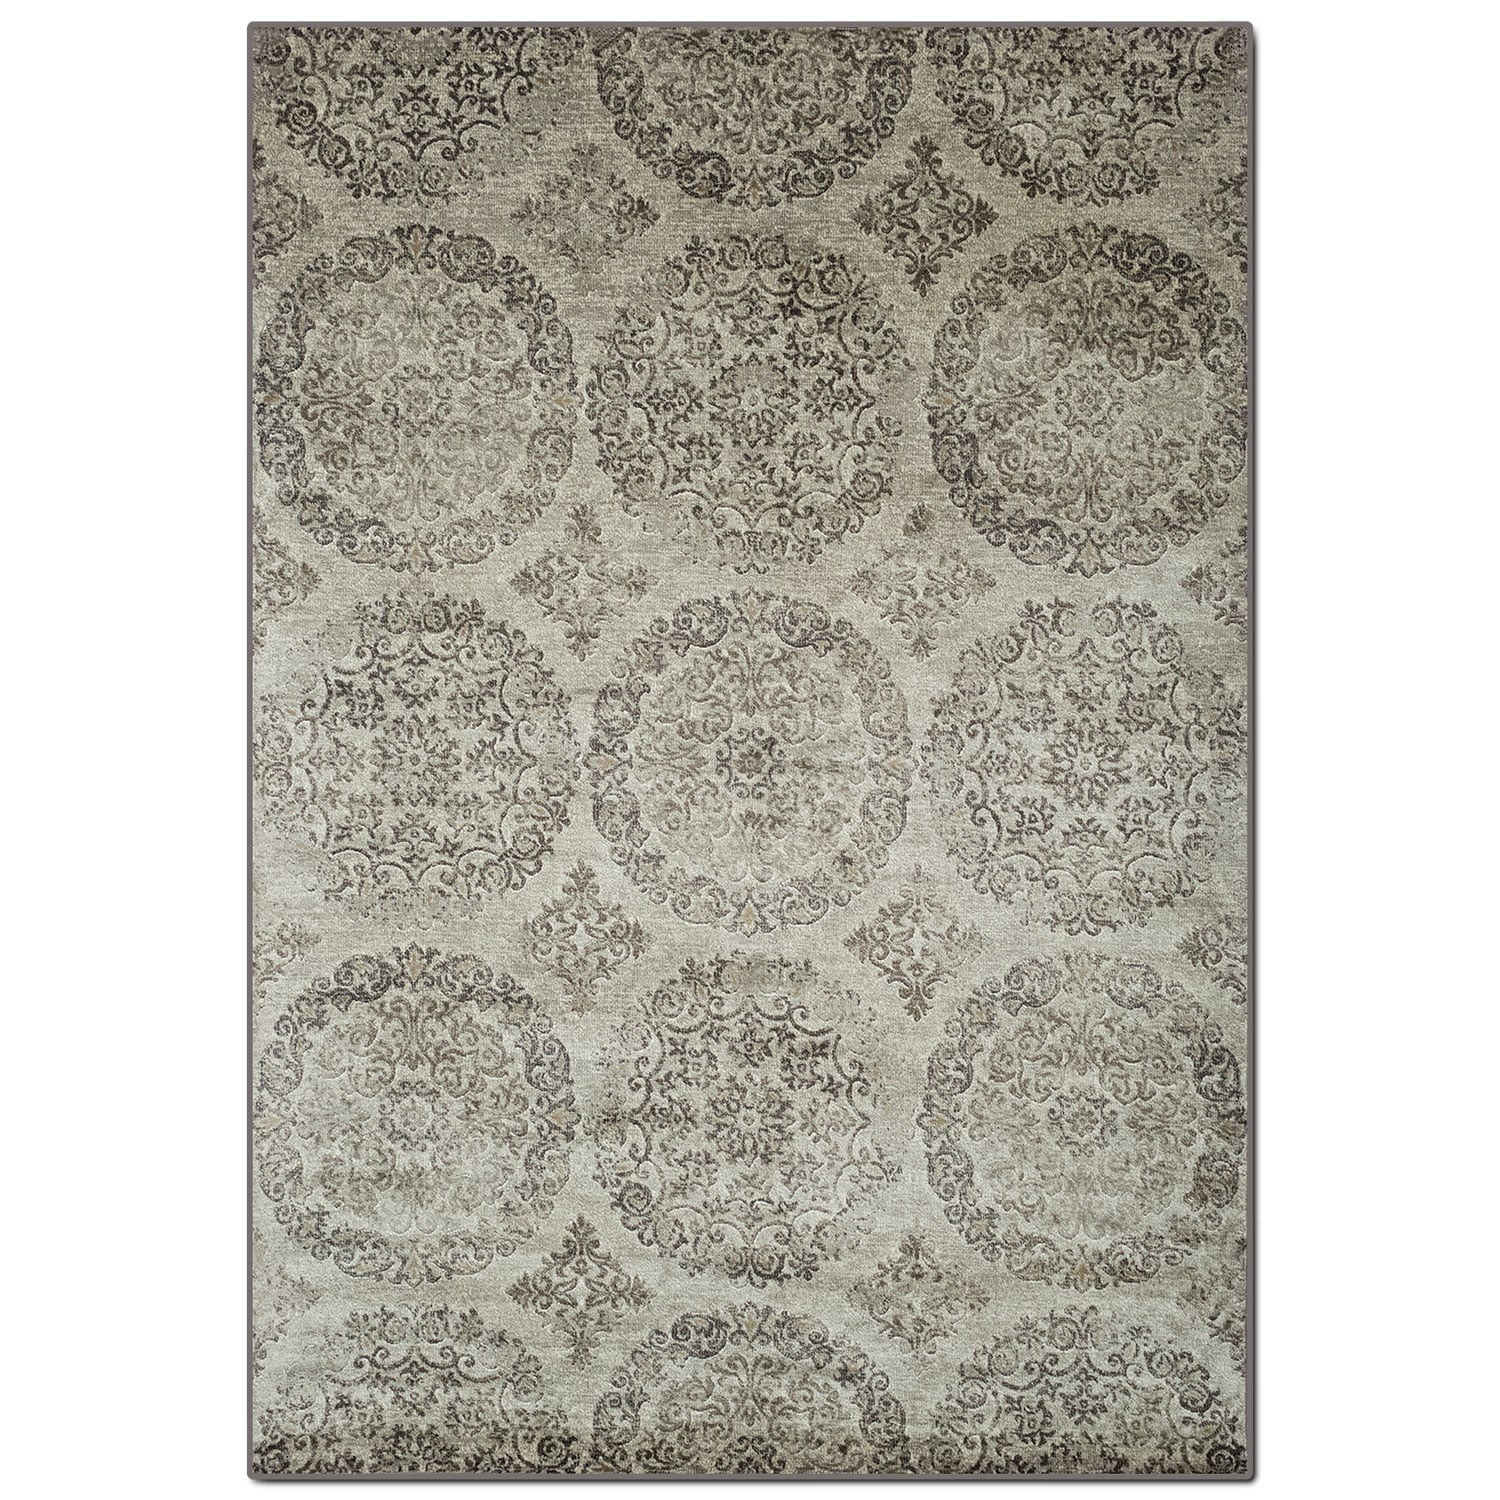 Rugs - Sonoma 8' x 10' Area Rug - Beige and Brown